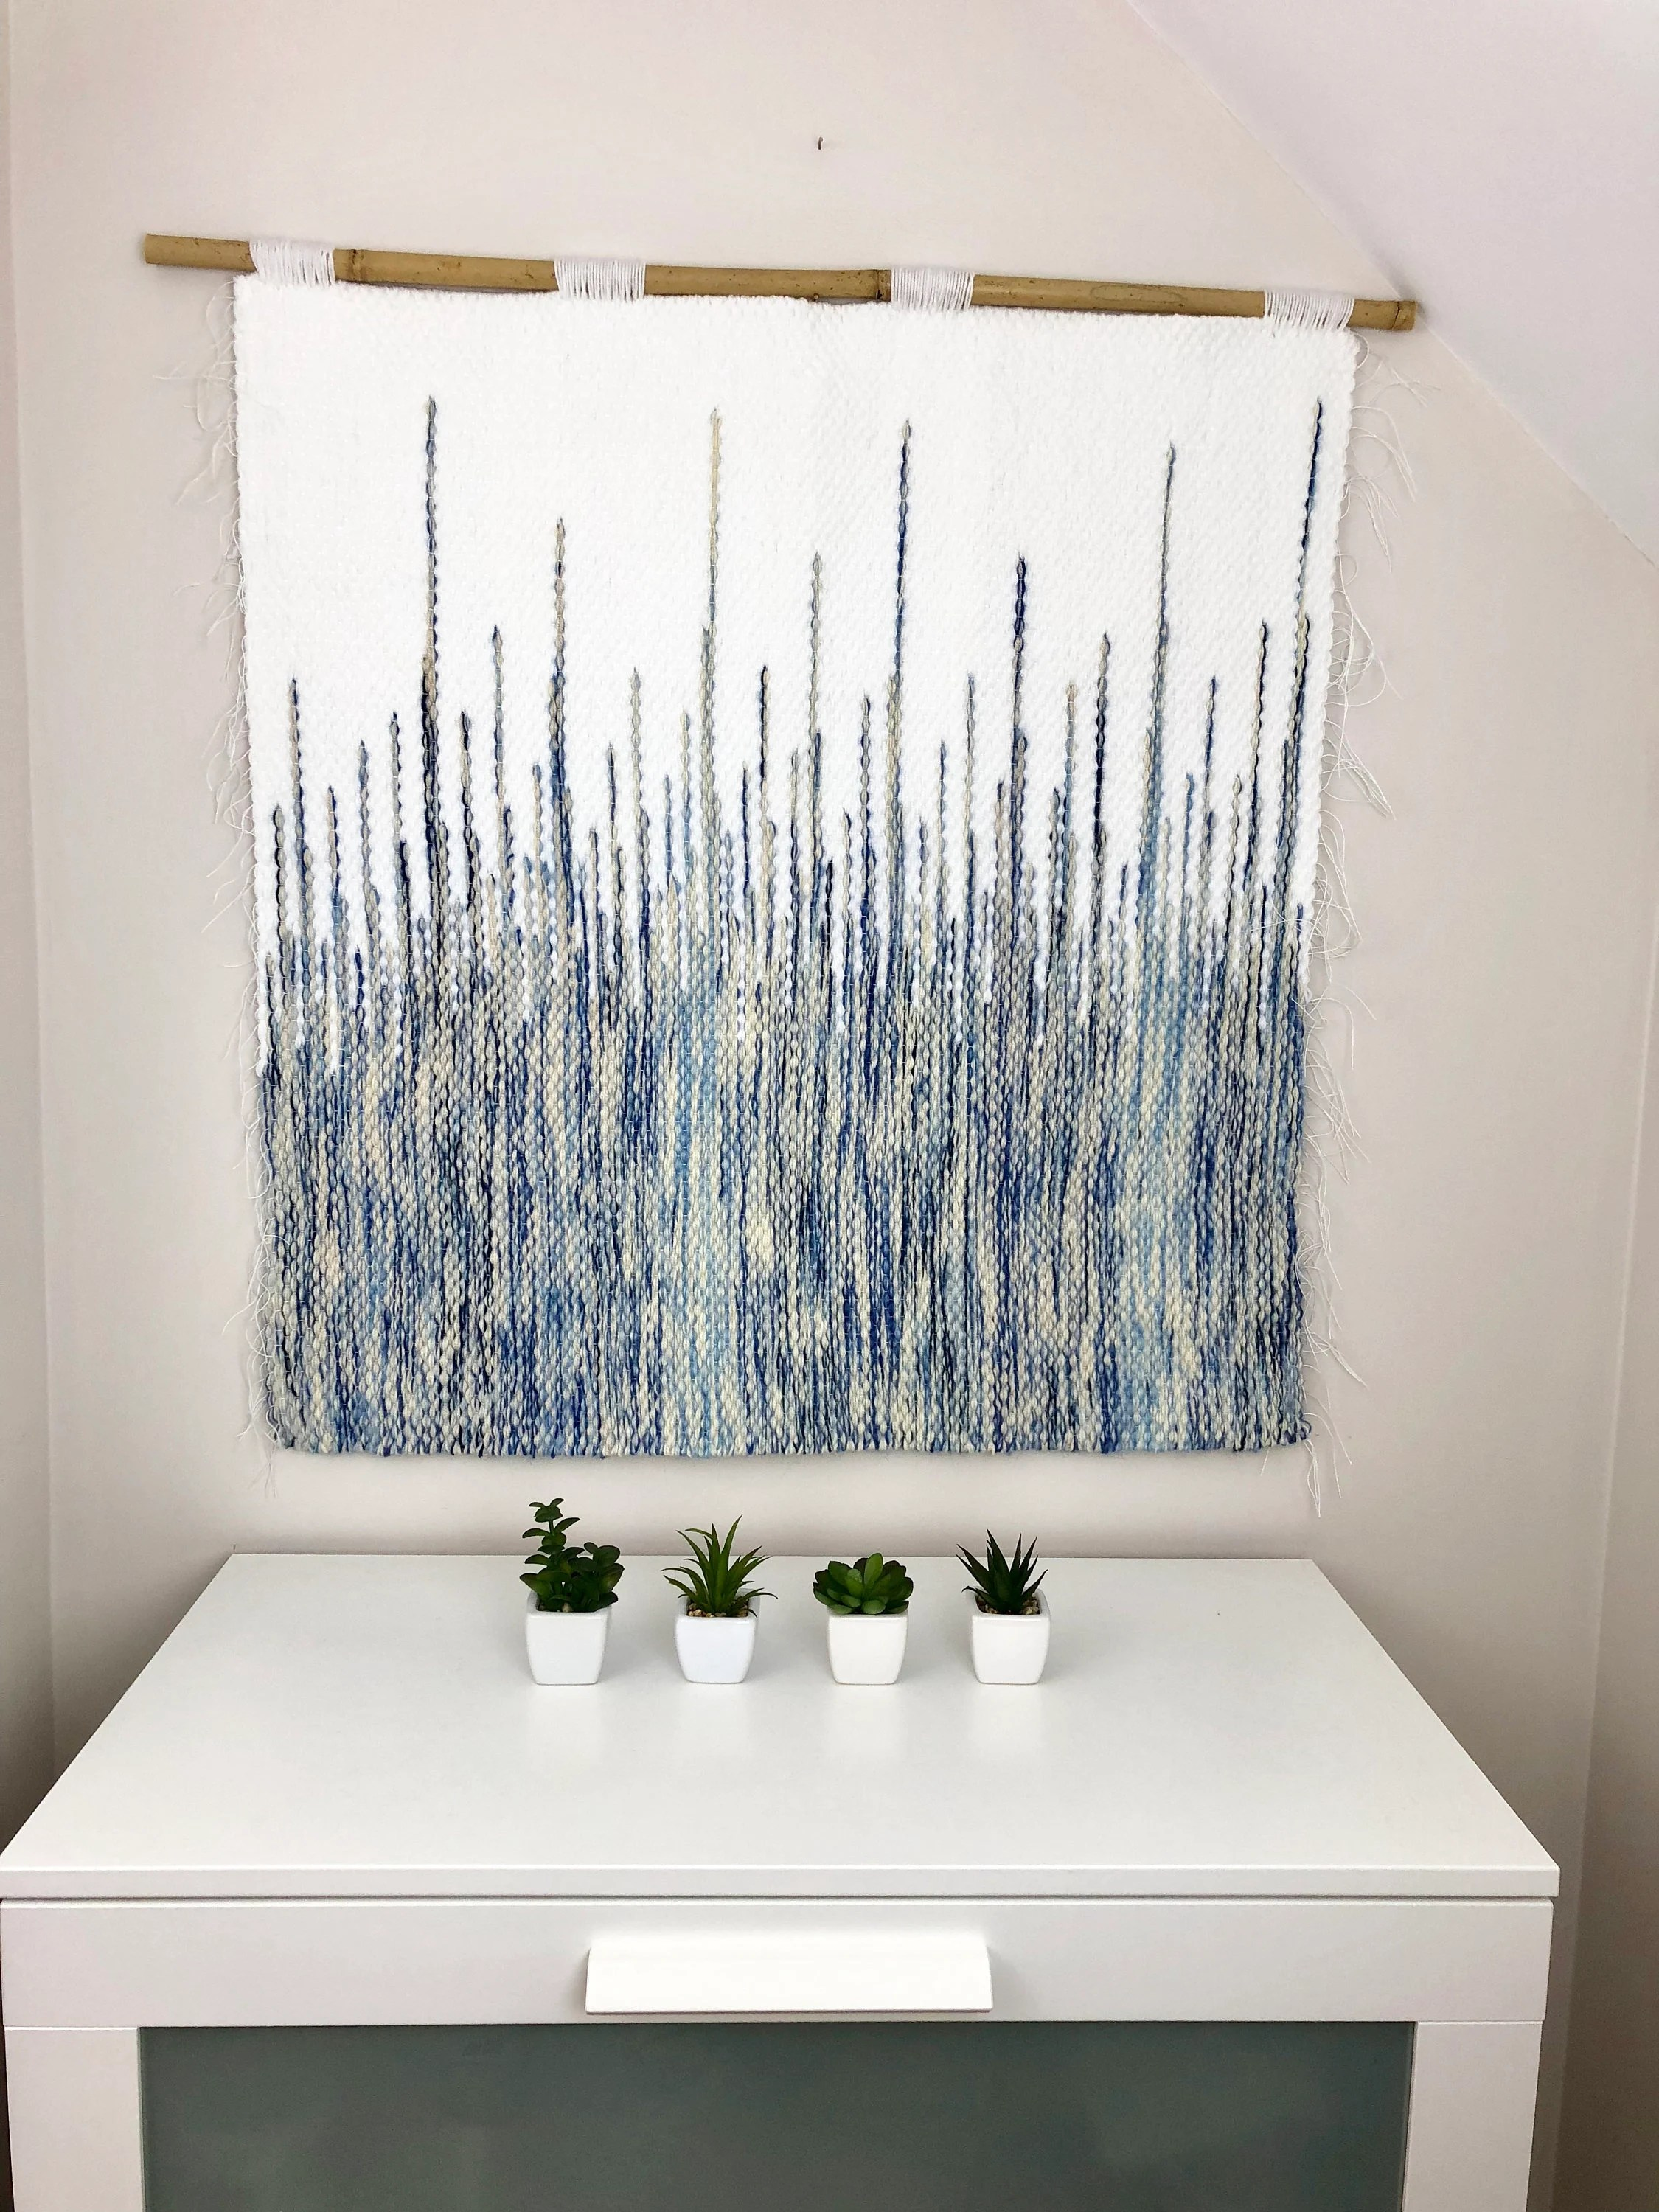 Wandteppich Modern Blue Macrame Wall Hanging Modern Tapestry Best Selling Art Woven Wall Hanging Horizontal Wall Art Makramee Wandbehang Weaving Loom Kit